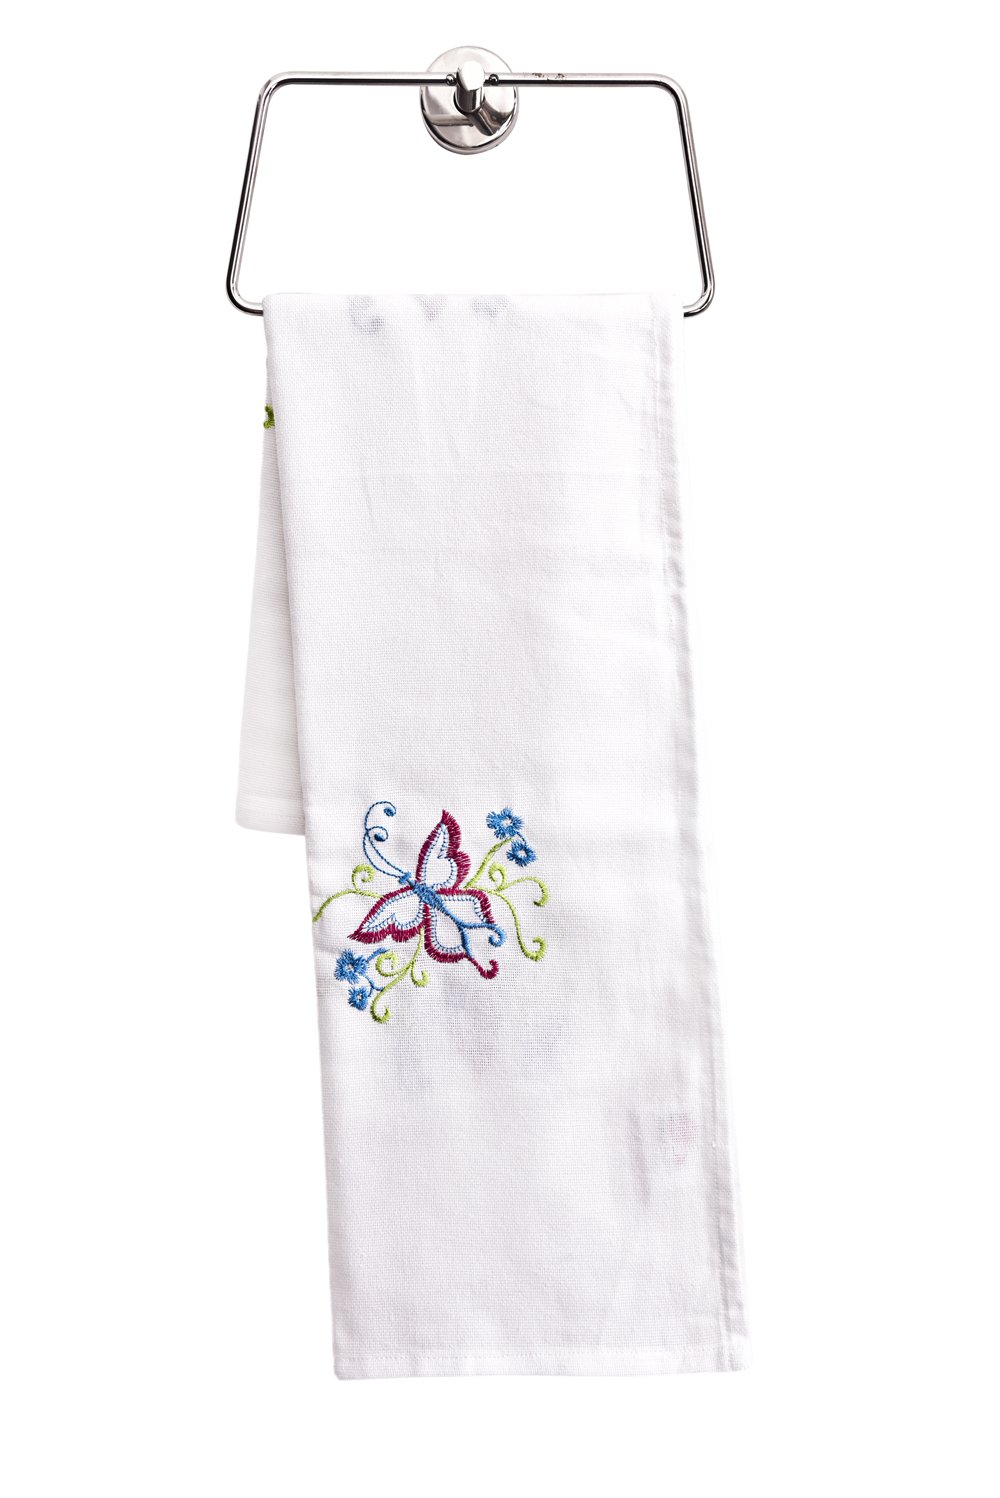 2019 Latest Design Towel Shower Towel Bath Towel Embroidered Embroidery Football Name By Scientific Process Bath